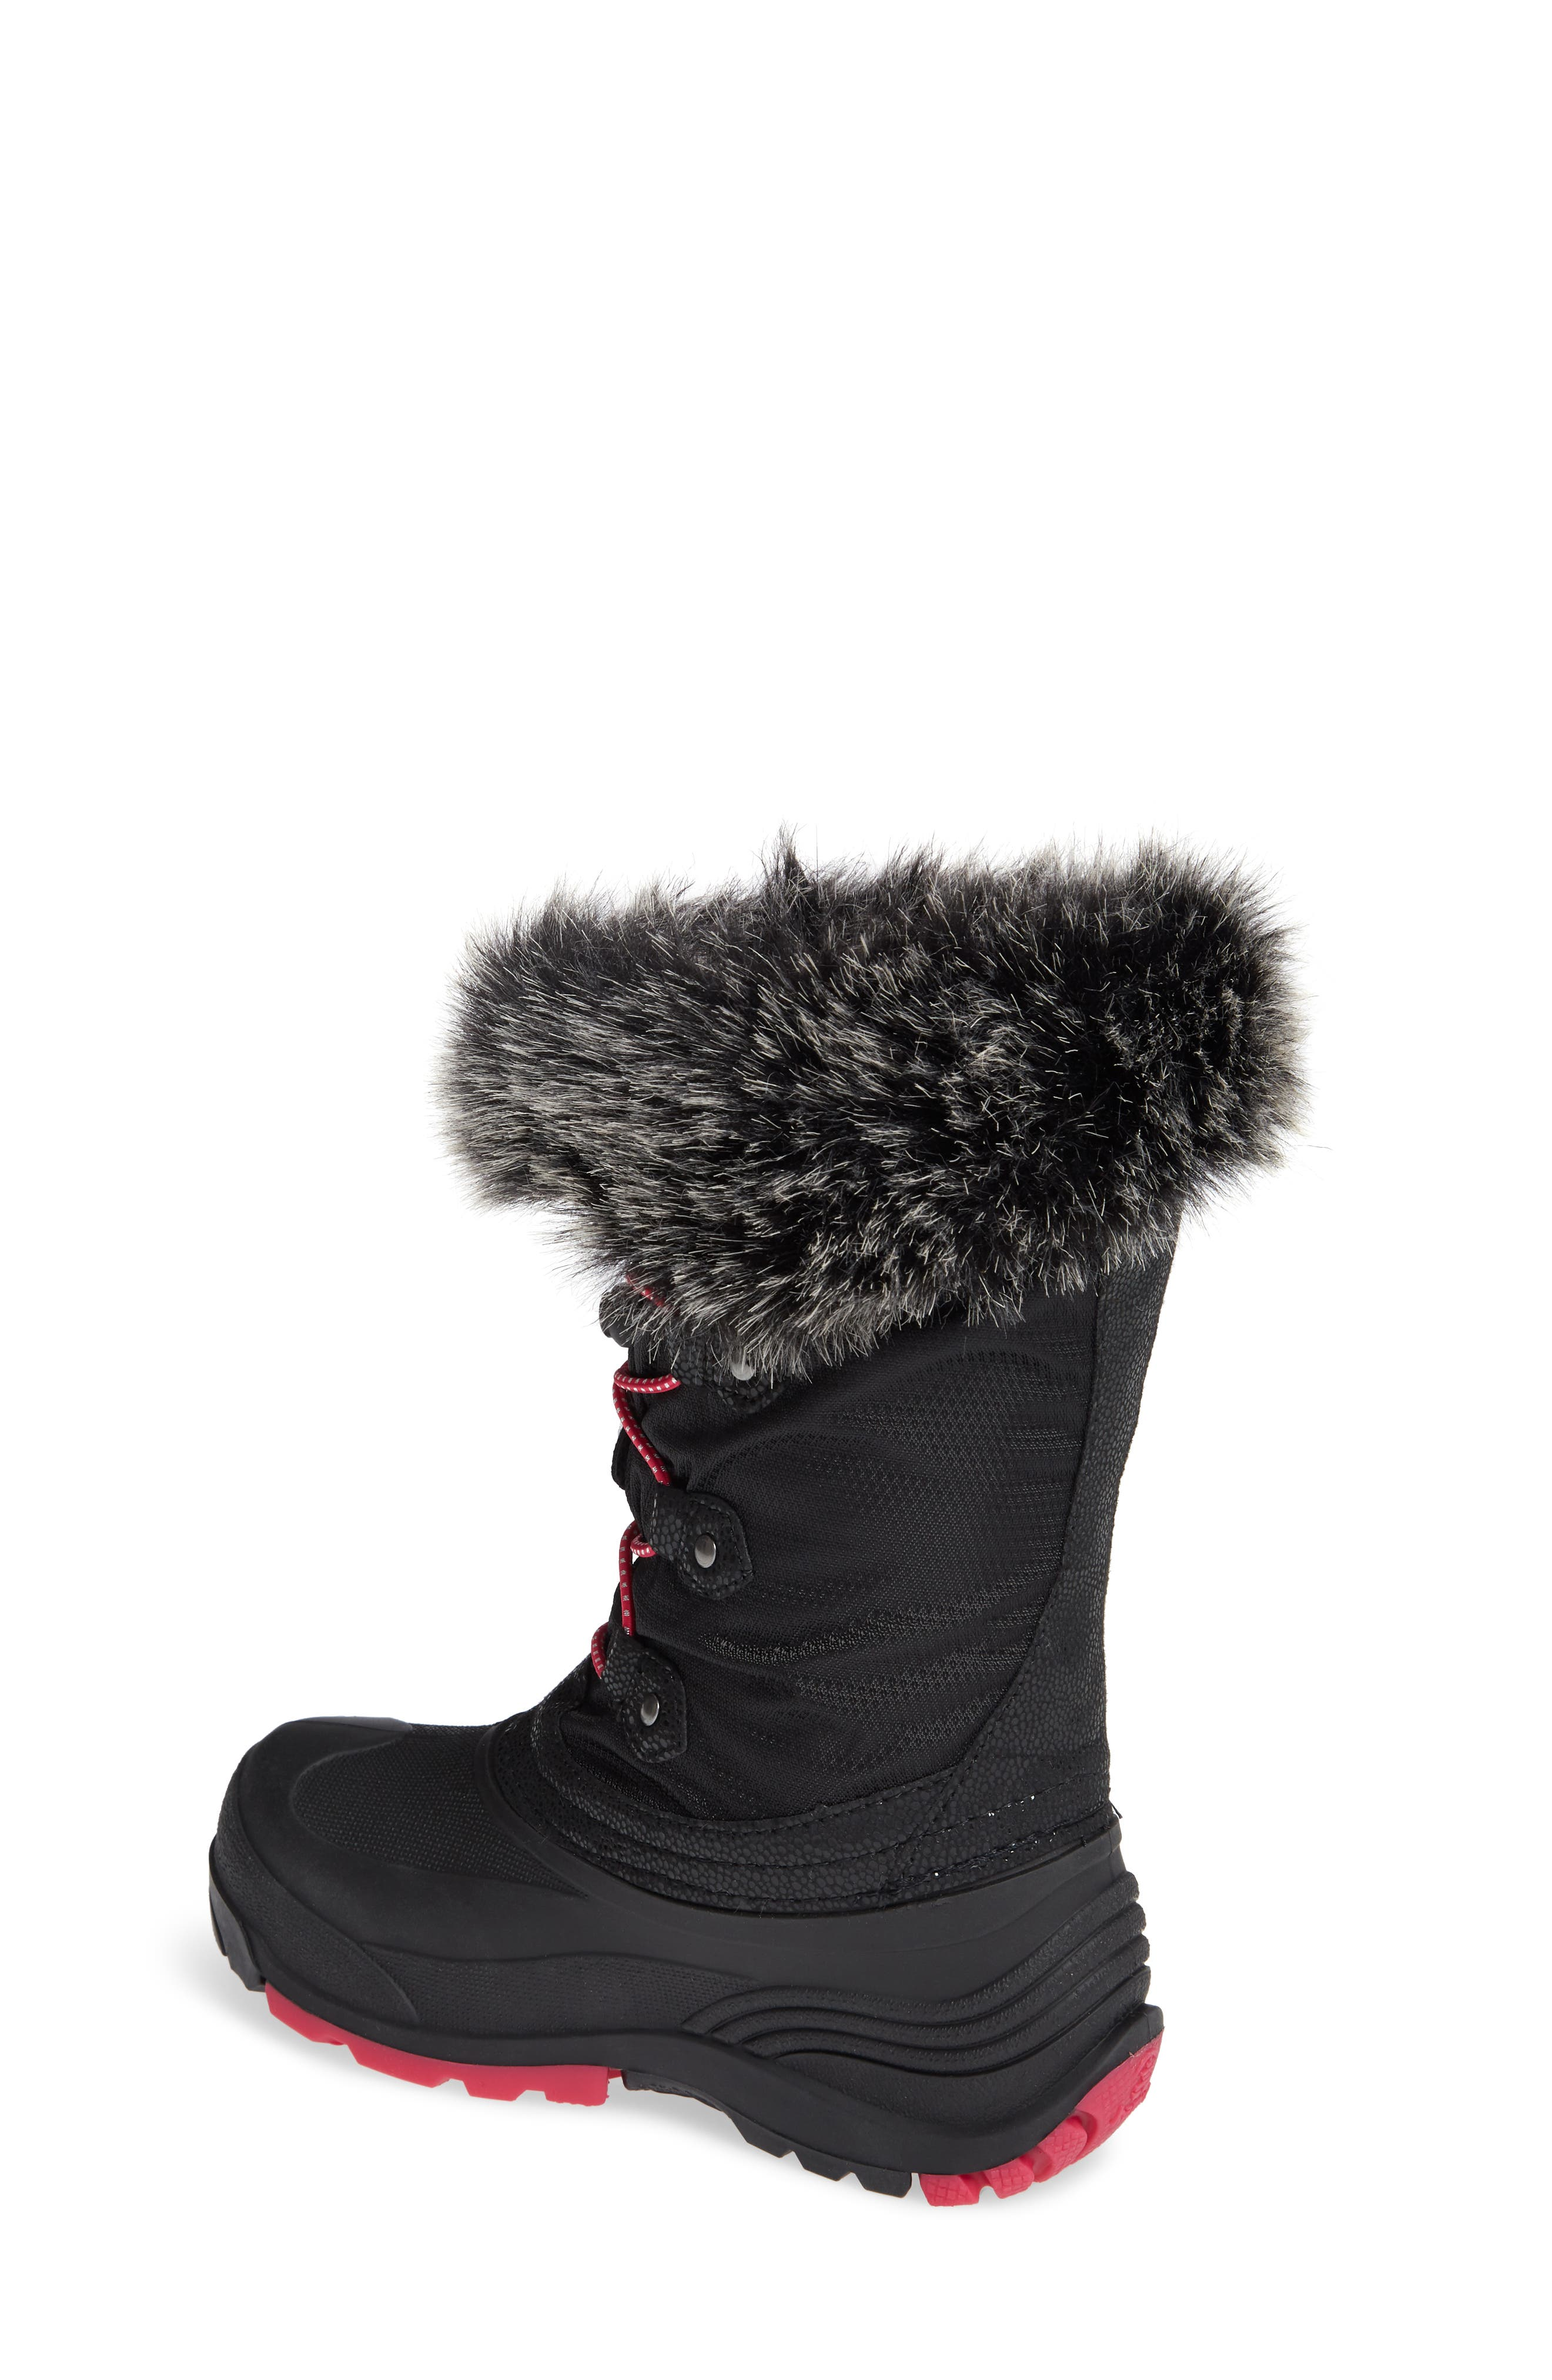 Powdery Waterproof Insulated Snow Boot,                             Alternate thumbnail 2, color,                             010